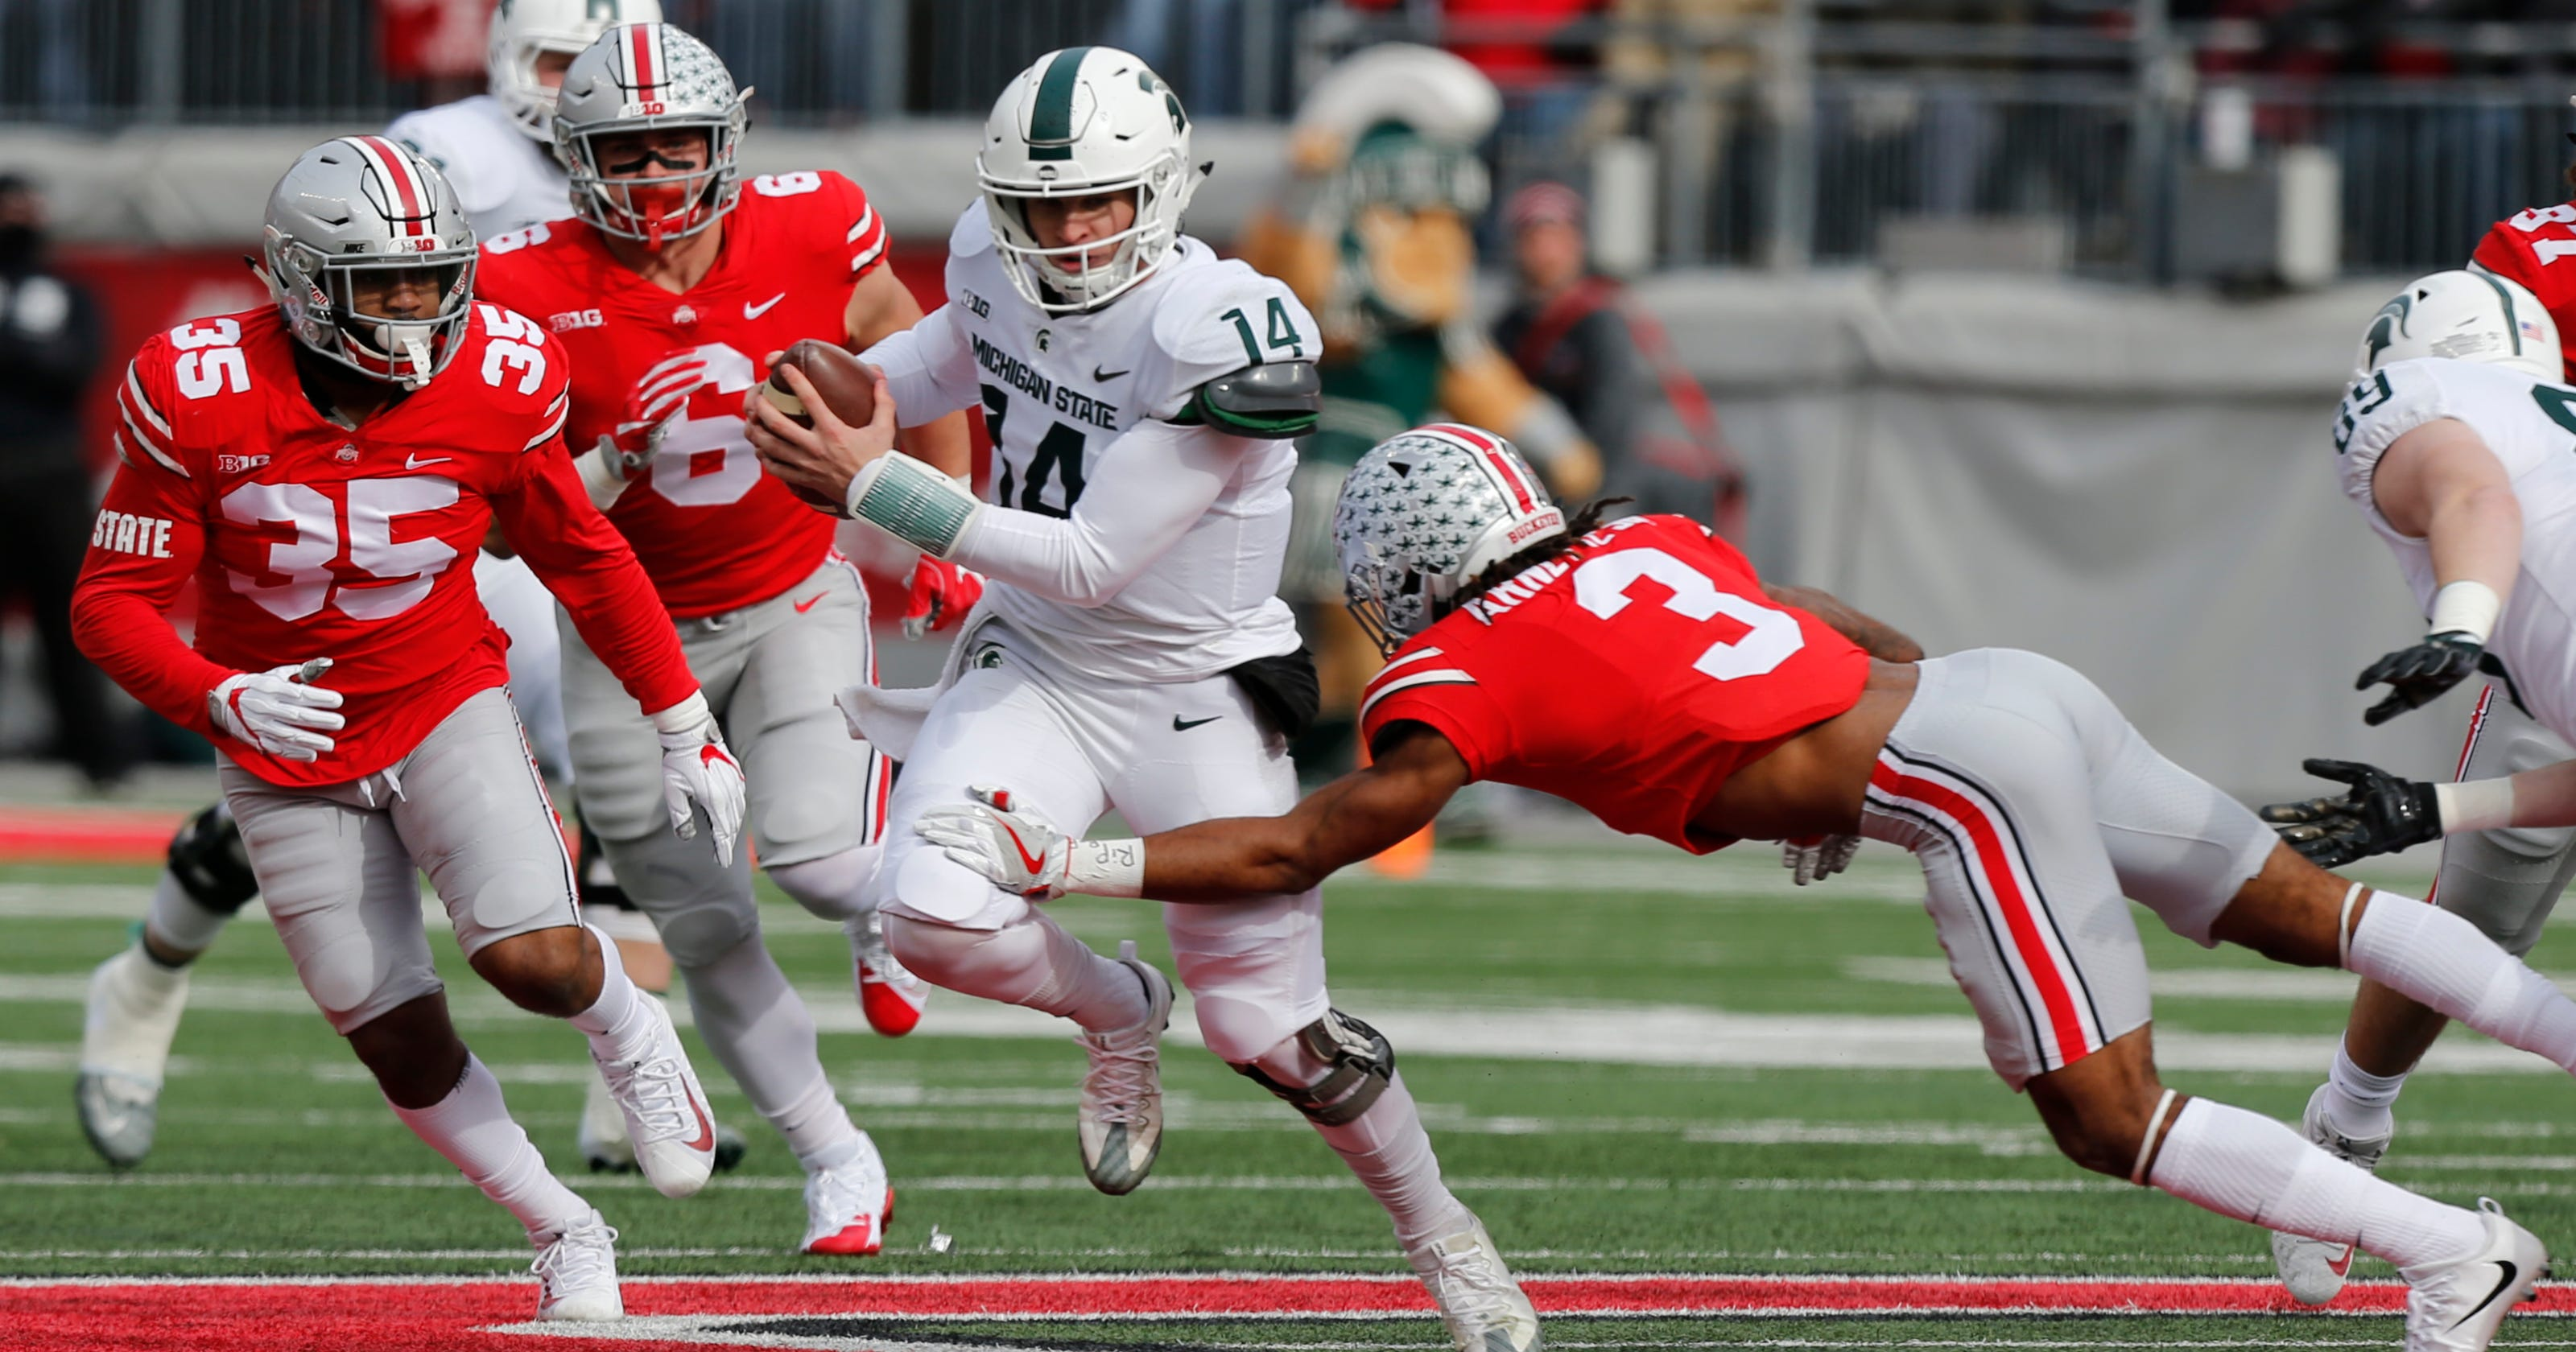 Michigan State vs. Ohio State football: How to watch on TV ...